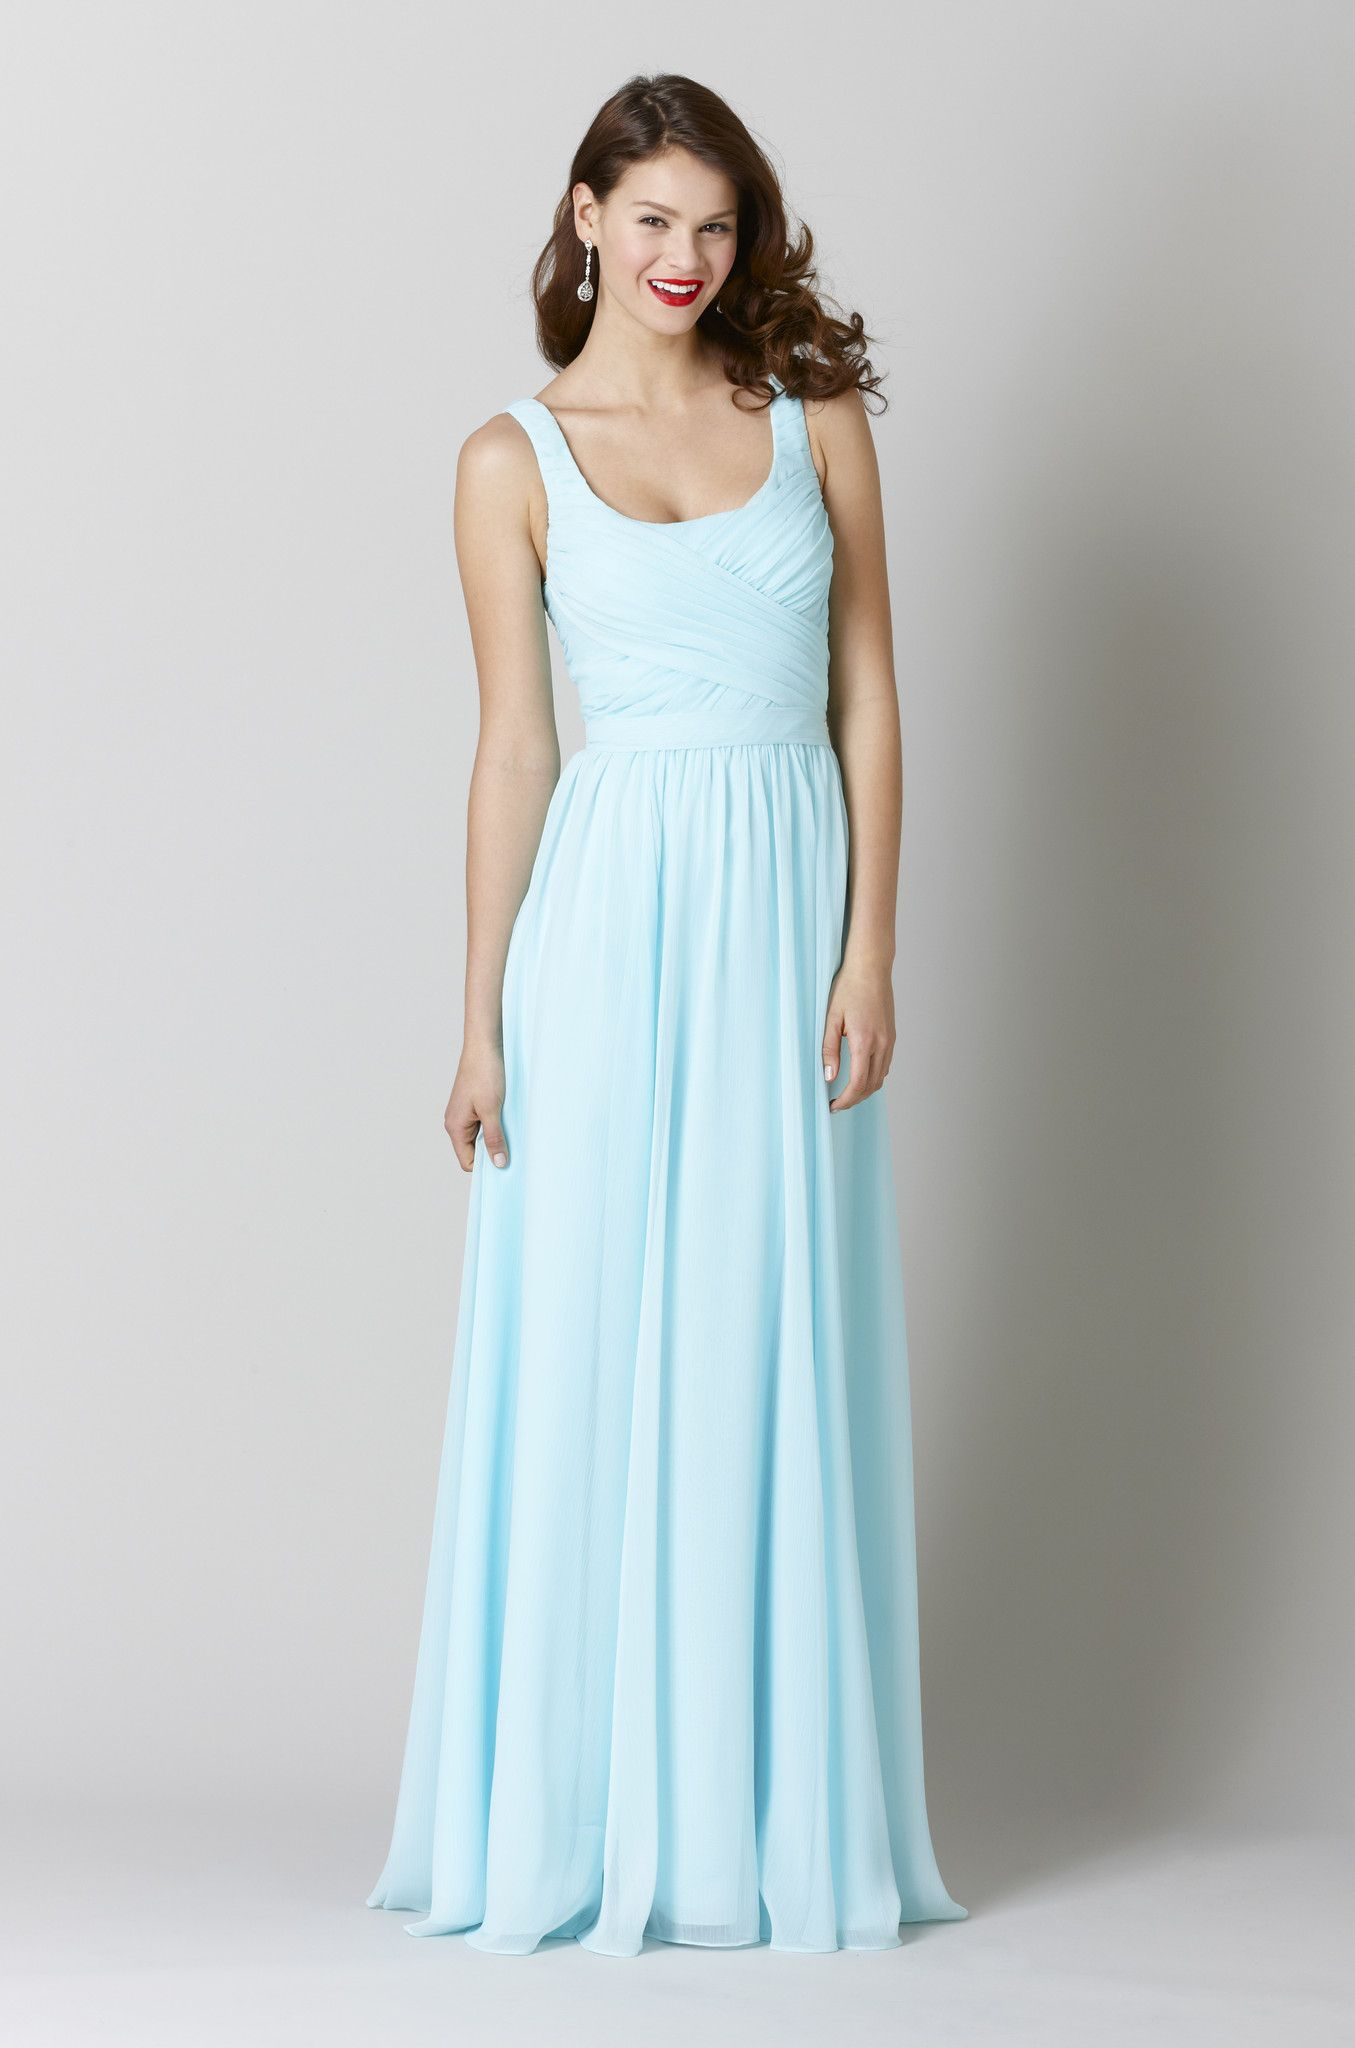 Sophia | Dress sites, Sophia dress and Wedding dress